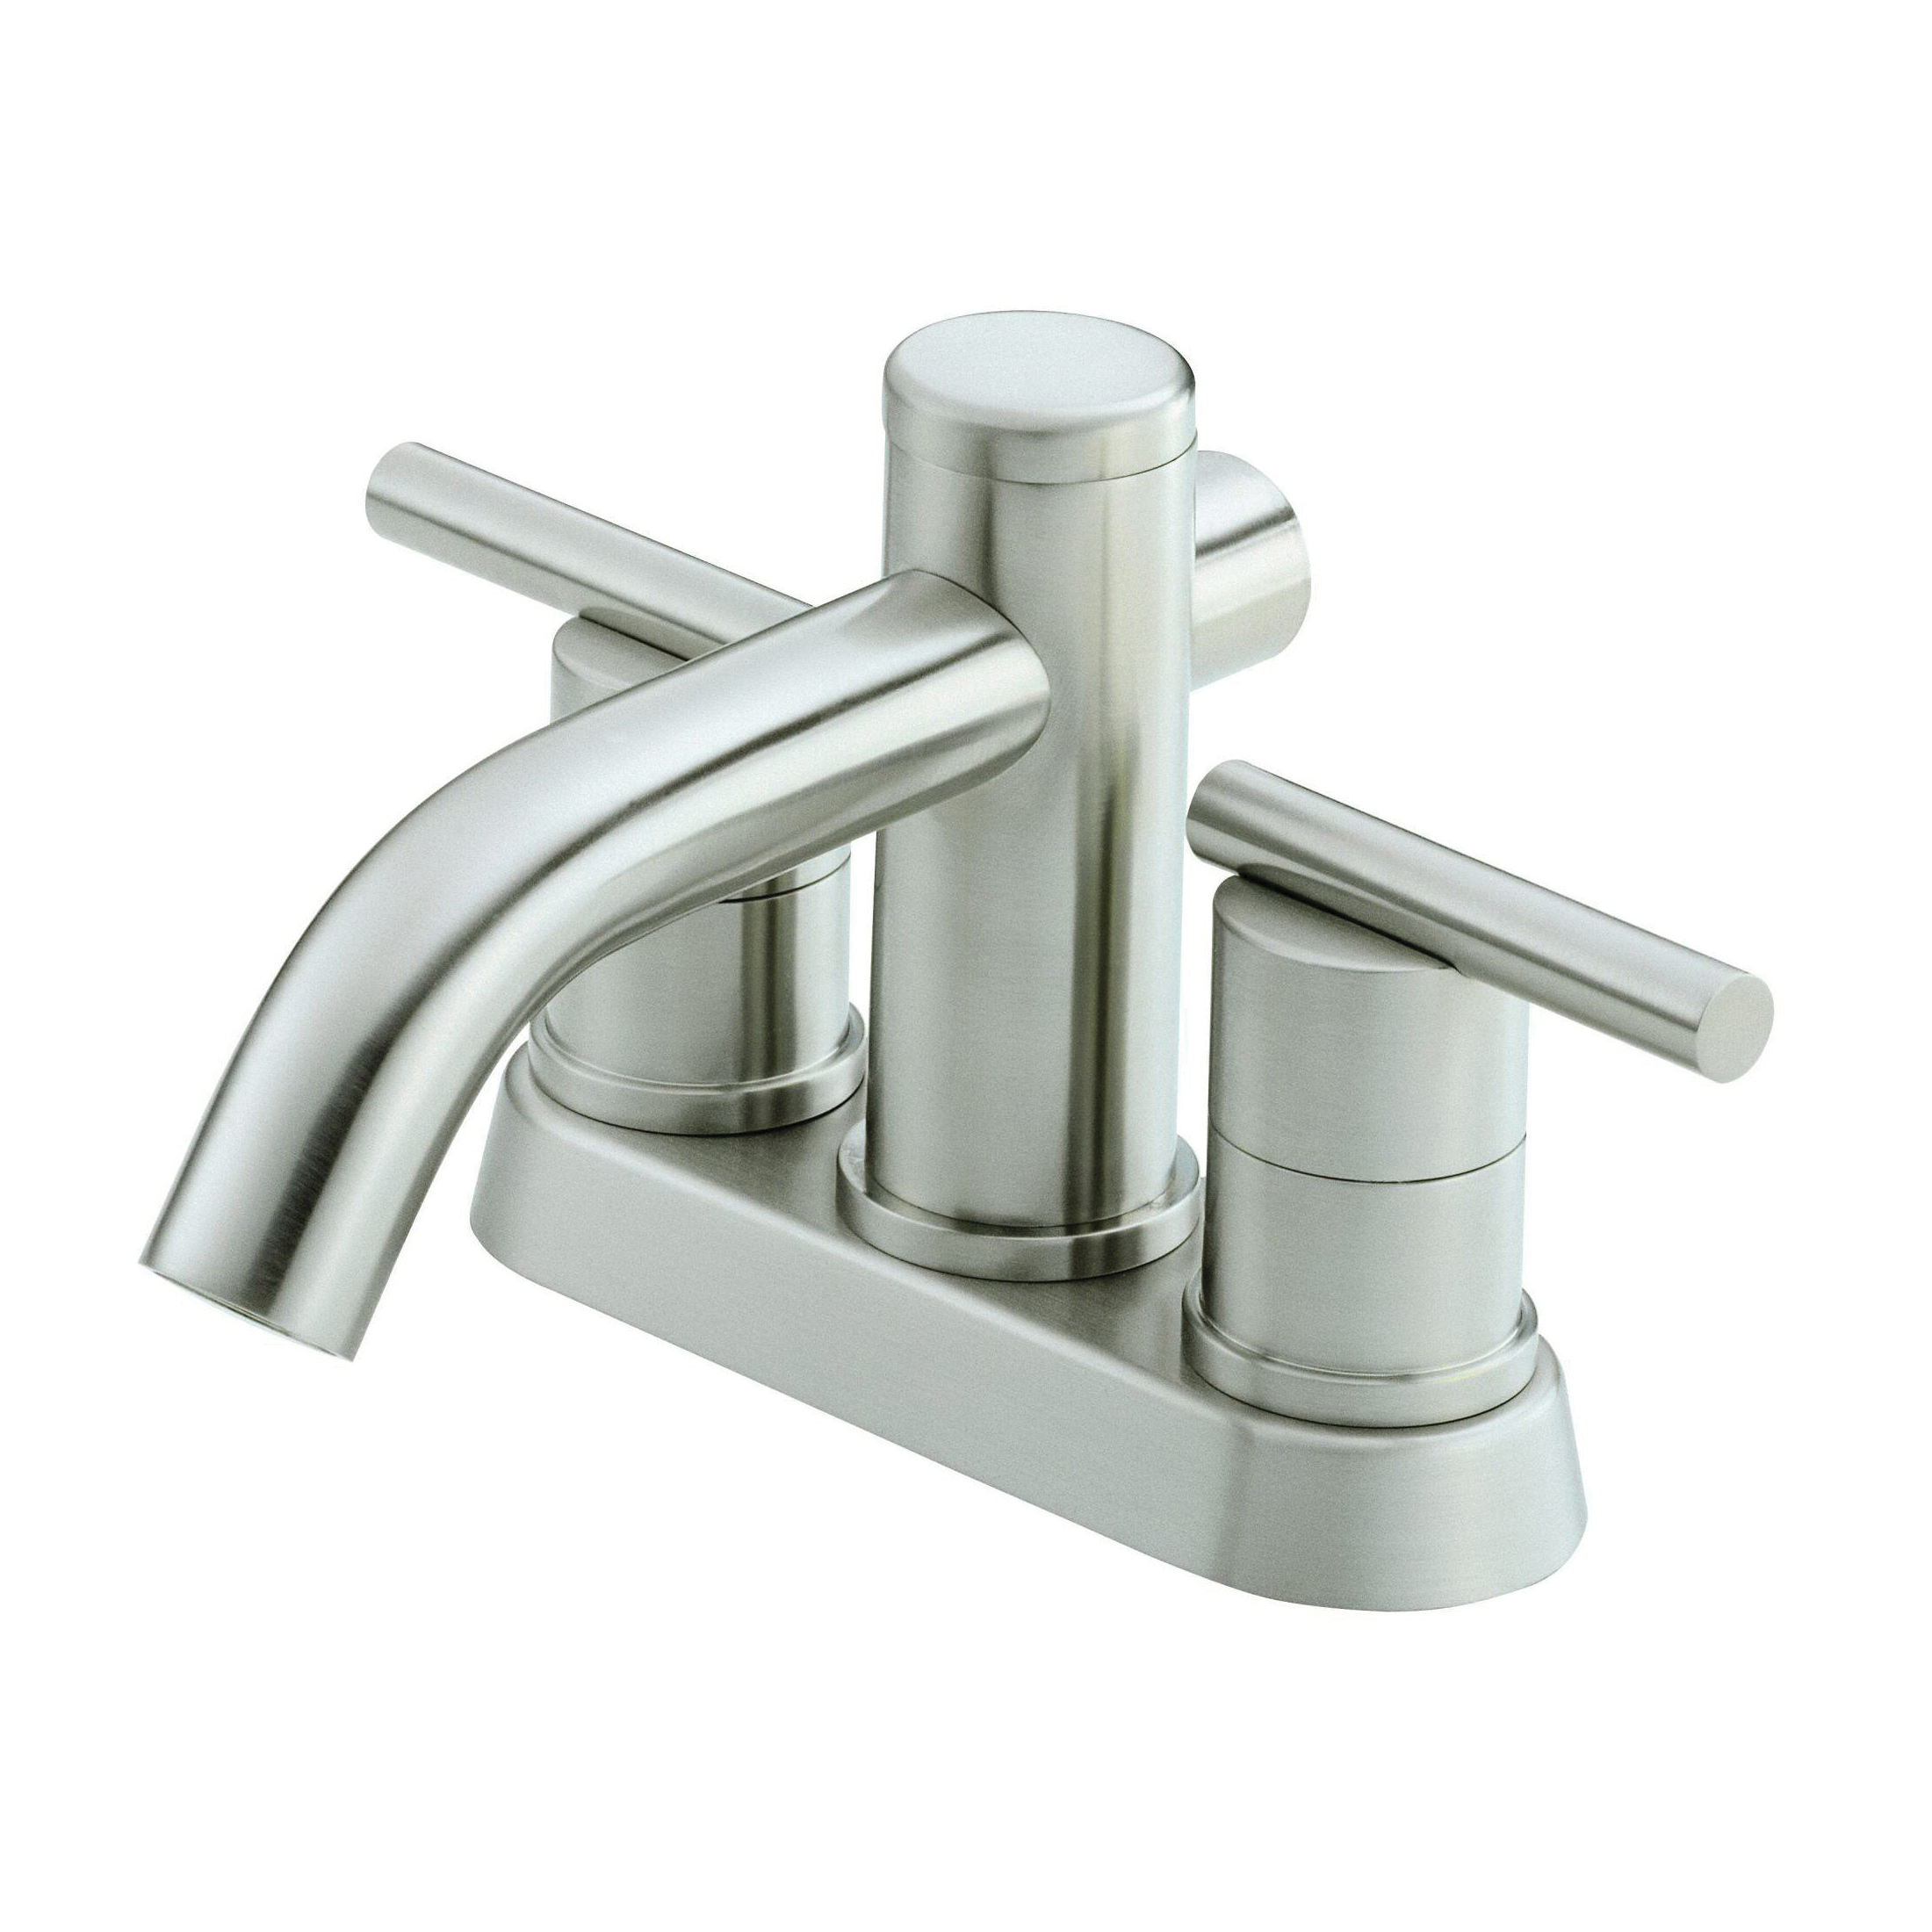 Danze® D301158BN Centerset Lavatory Faucet, Parma®, Brushed Nickel, 2 Handles, Metal Touch-Down Drain, 1.2 gpm